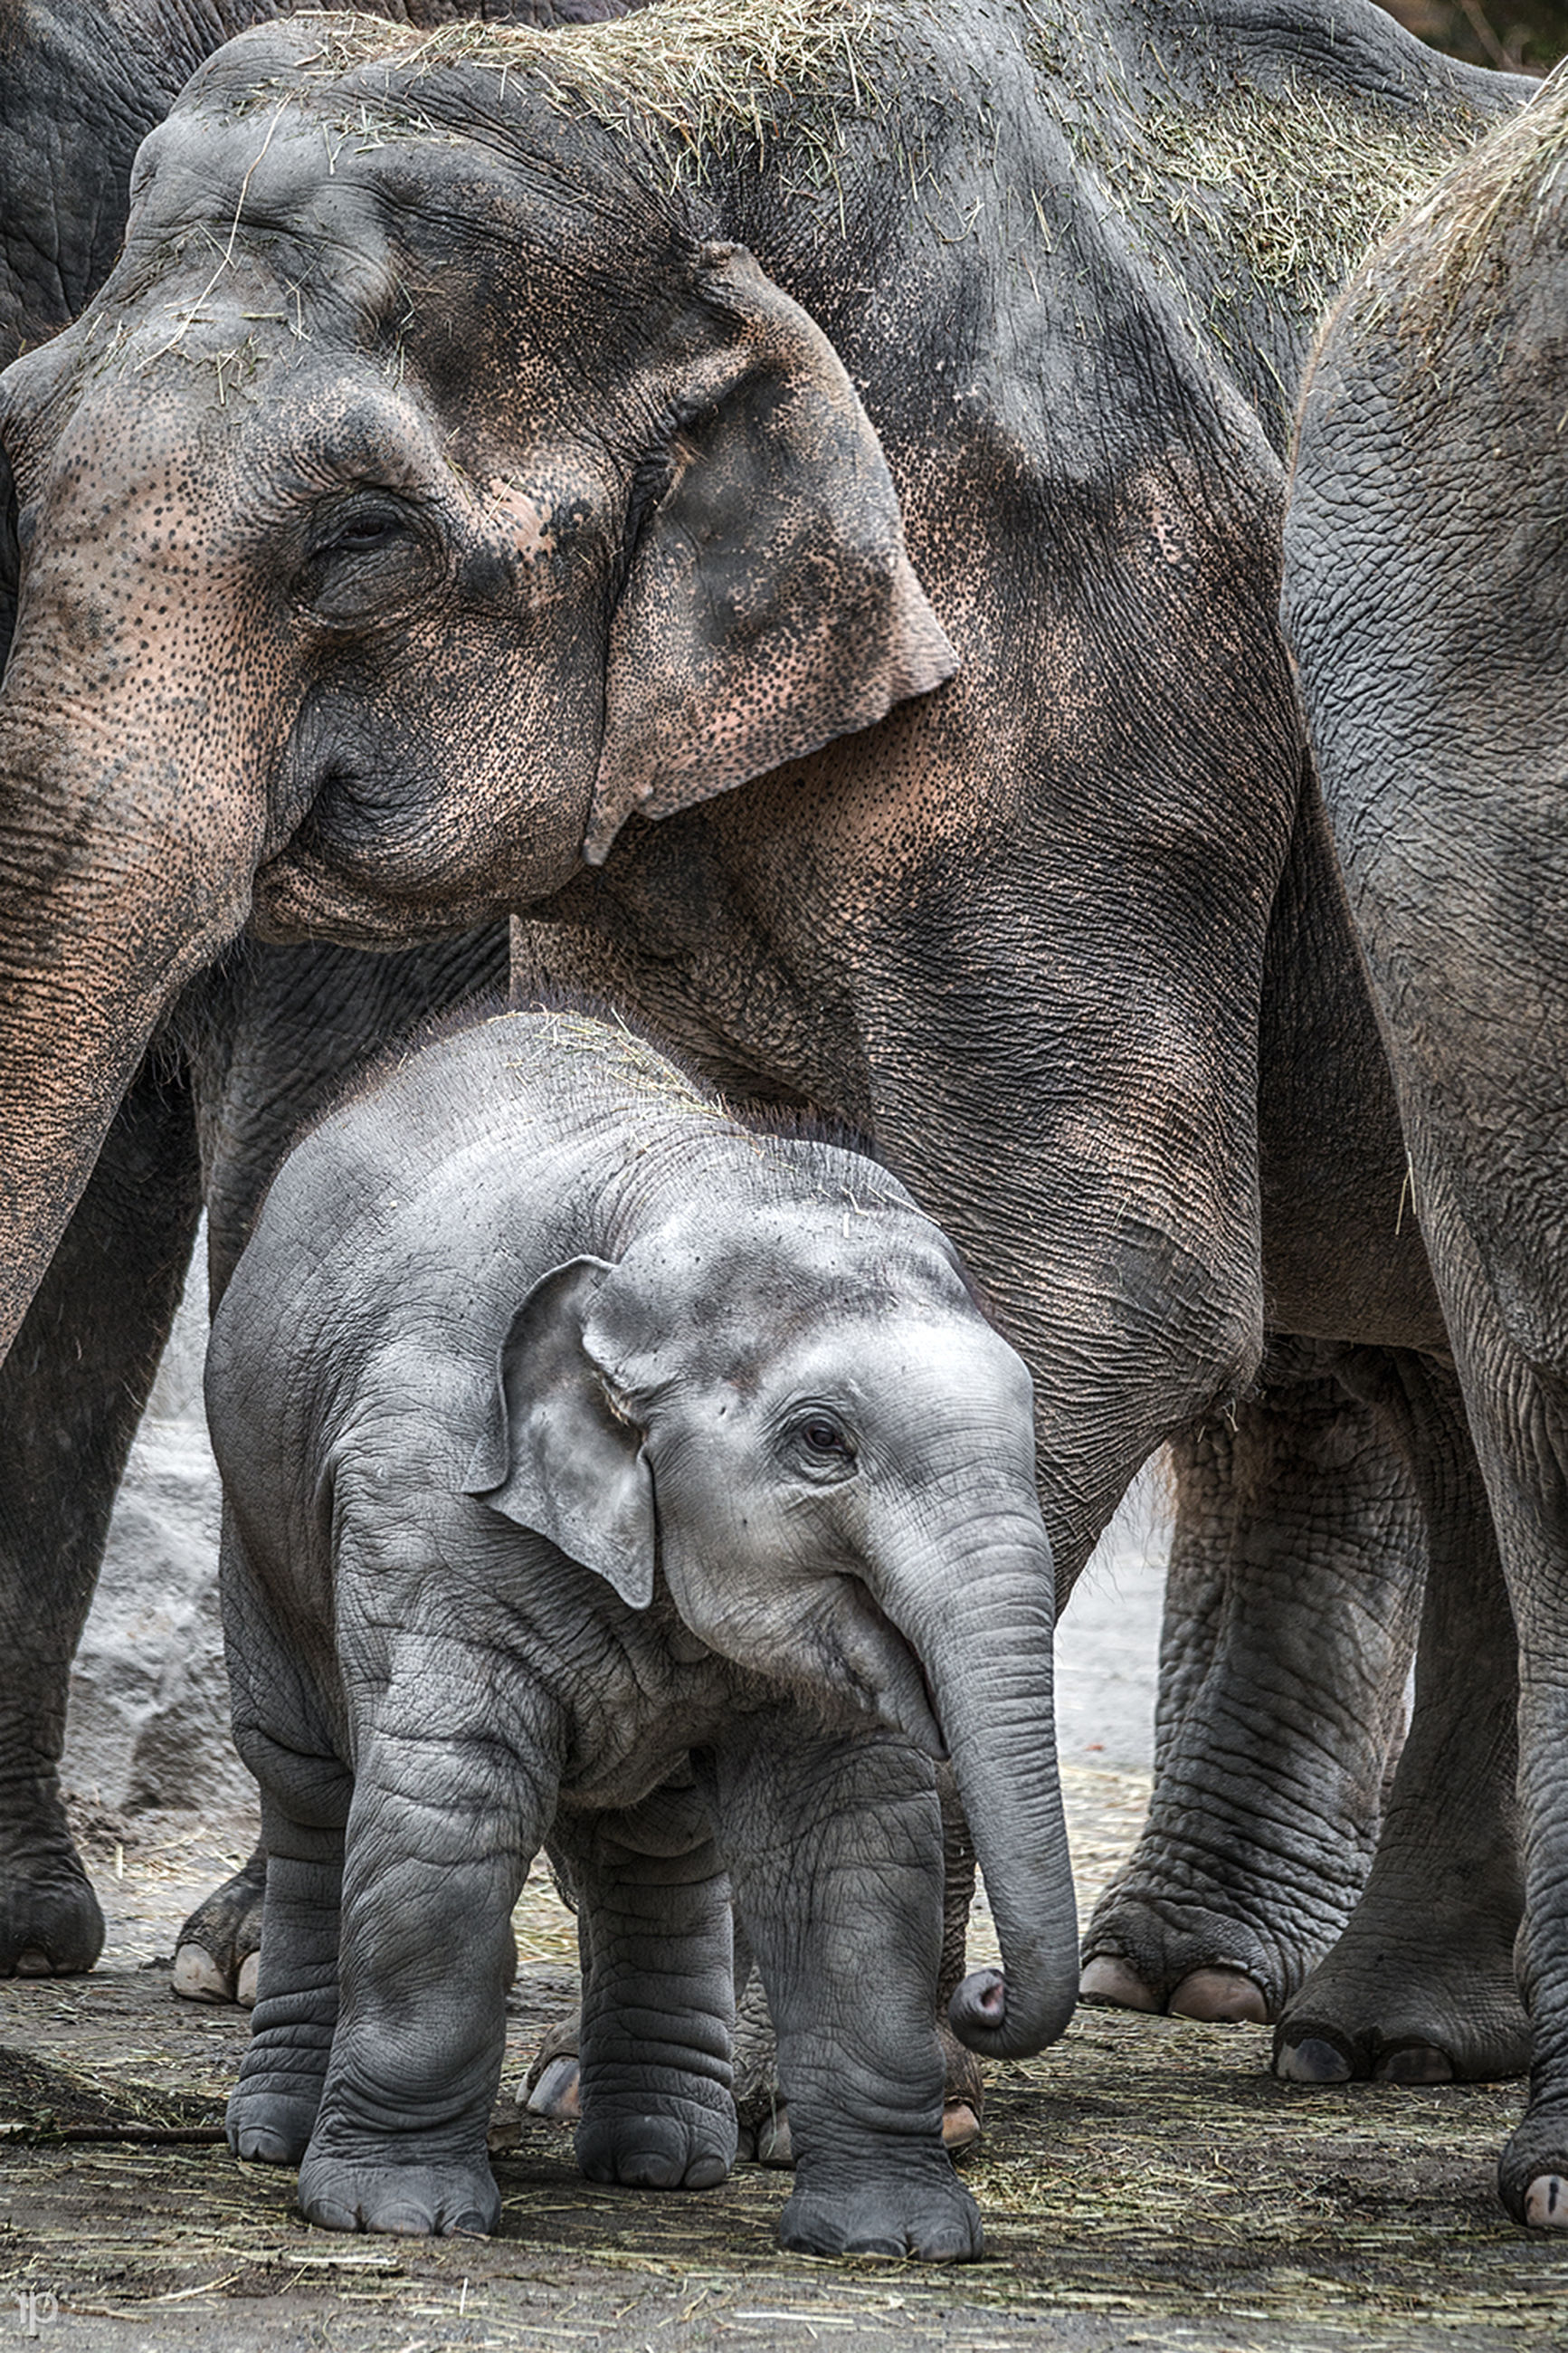 animal themes, mammal, one animal, domestic animals, wildlife, animals in the wild, two animals, no people, close-up, animal head, outdoors, day, togetherness, relaxation, nature, animal family, zoo, safari animals, zoology, elephant